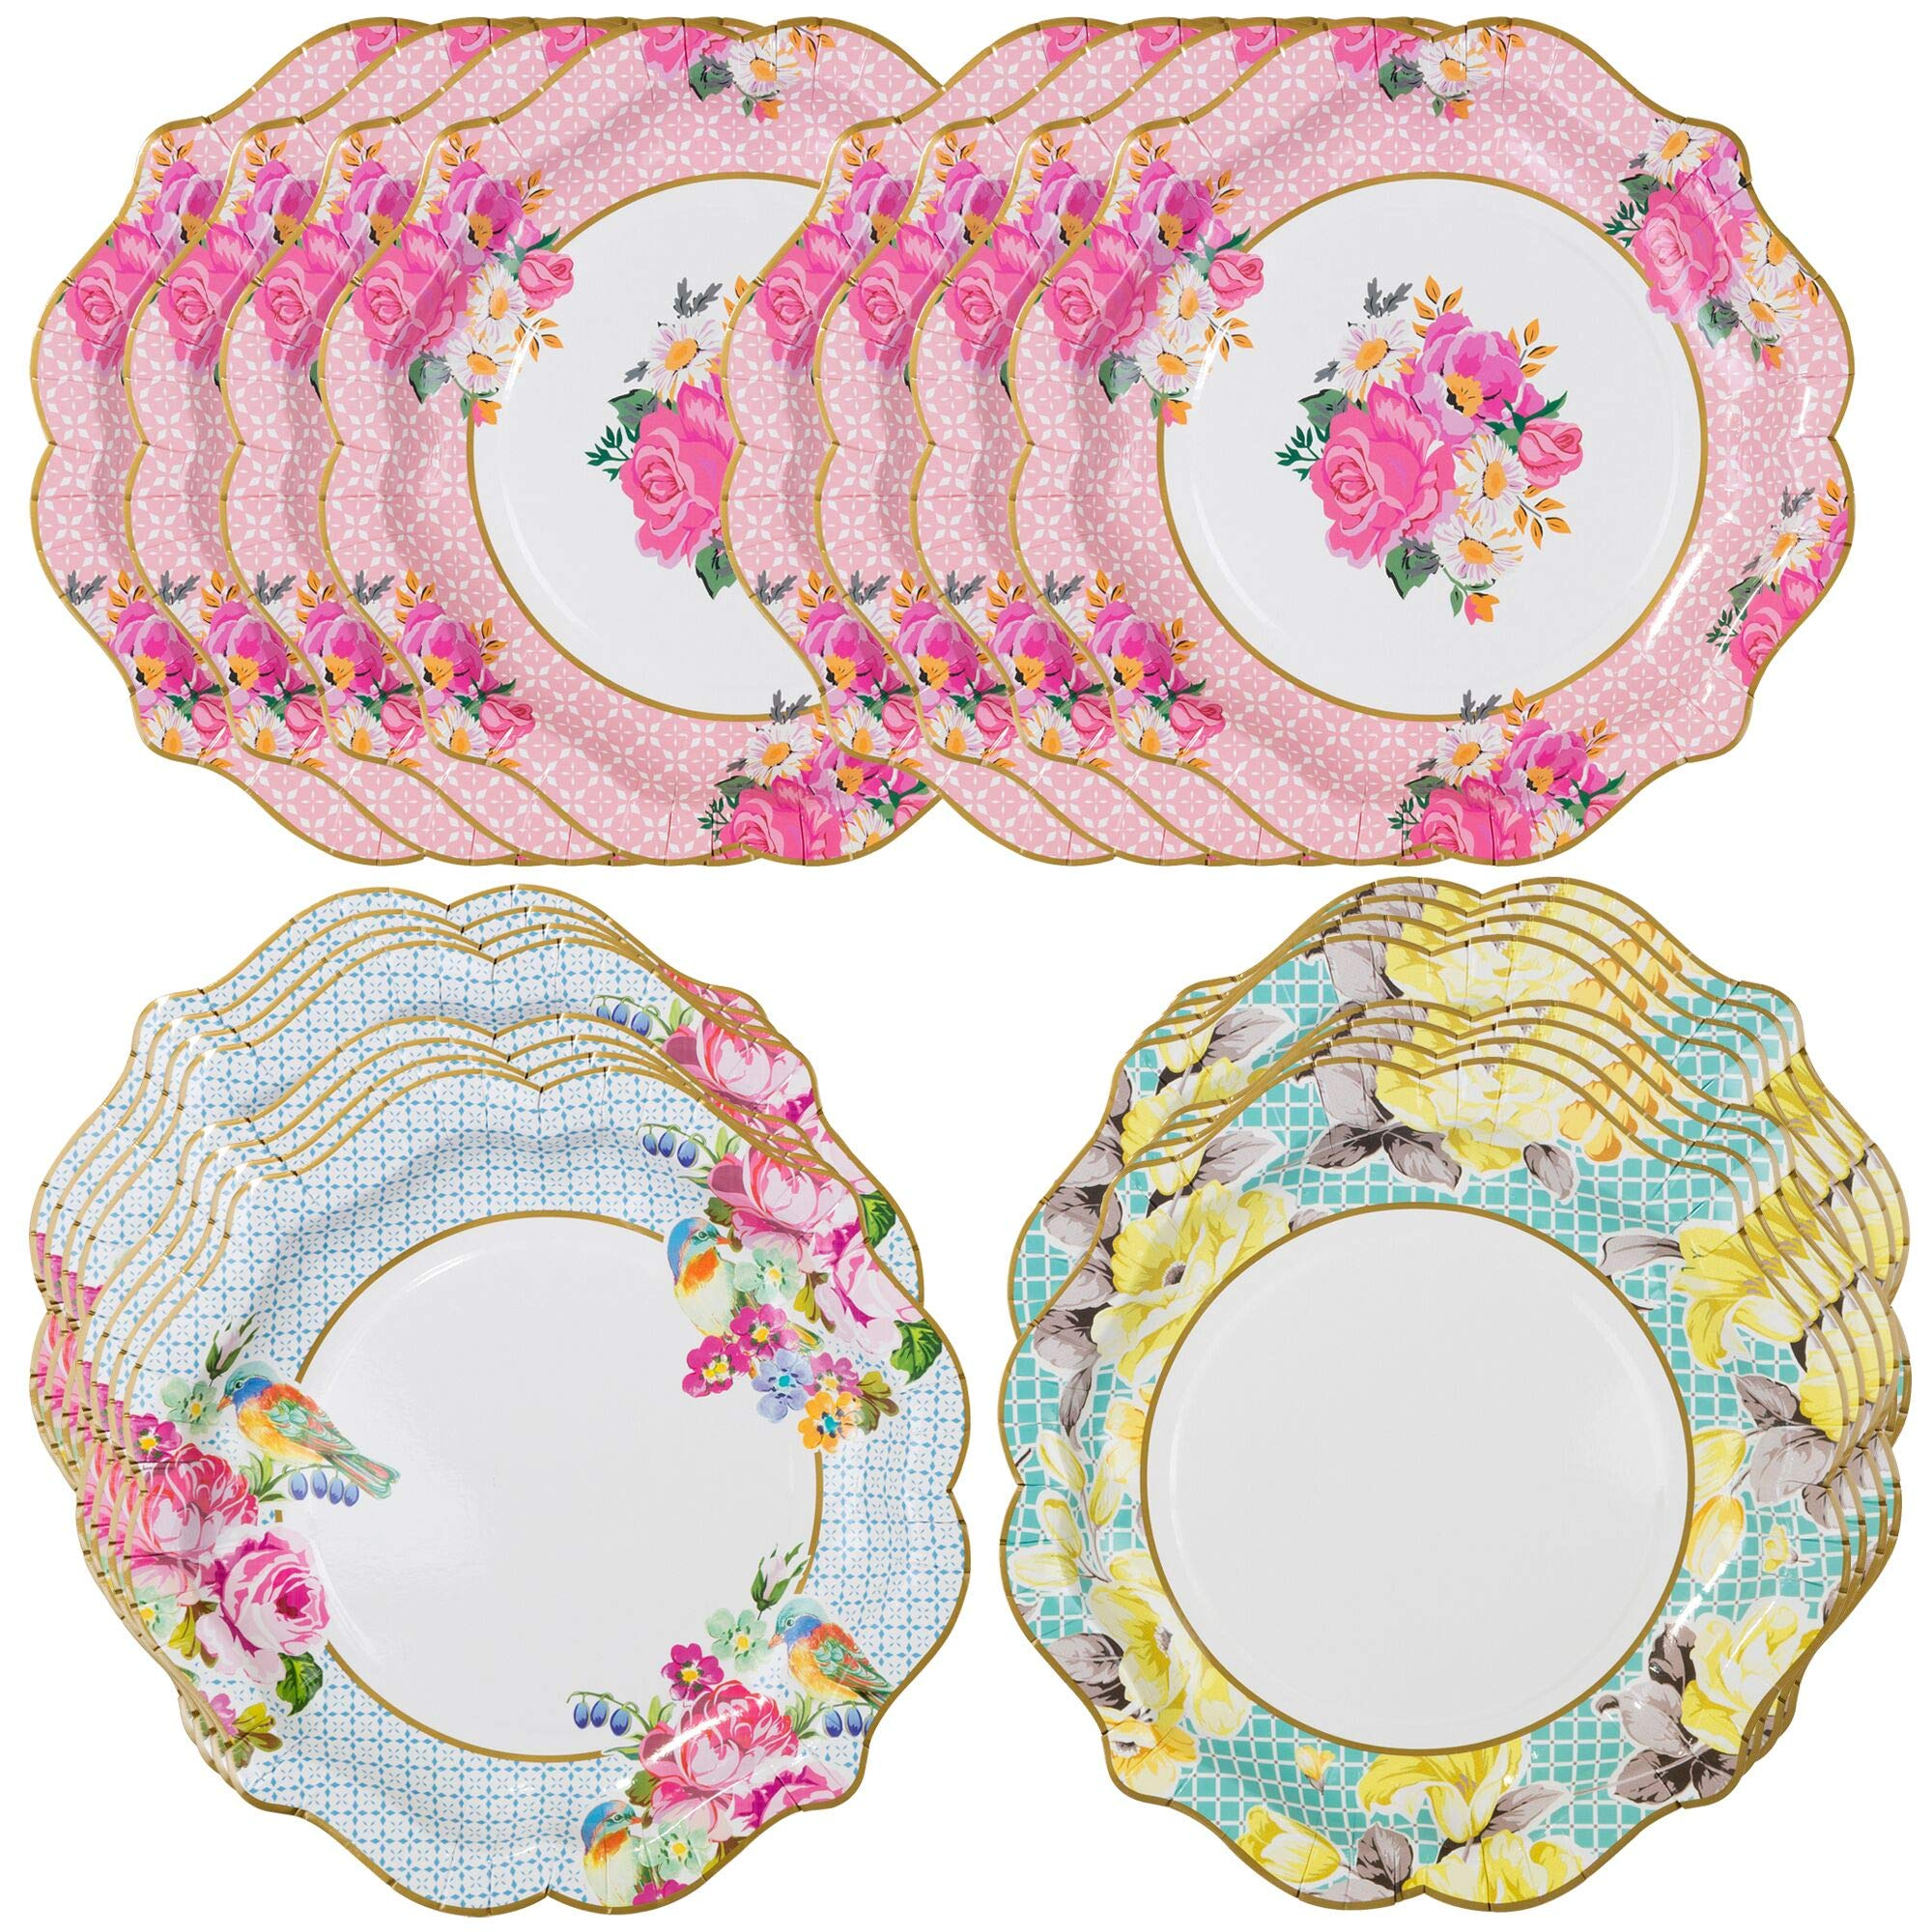 Talking Tables Truly Scrumptious Floral Plates for a Tea Party, Wedding, Multicolor (24 Pack) by Talking Tables